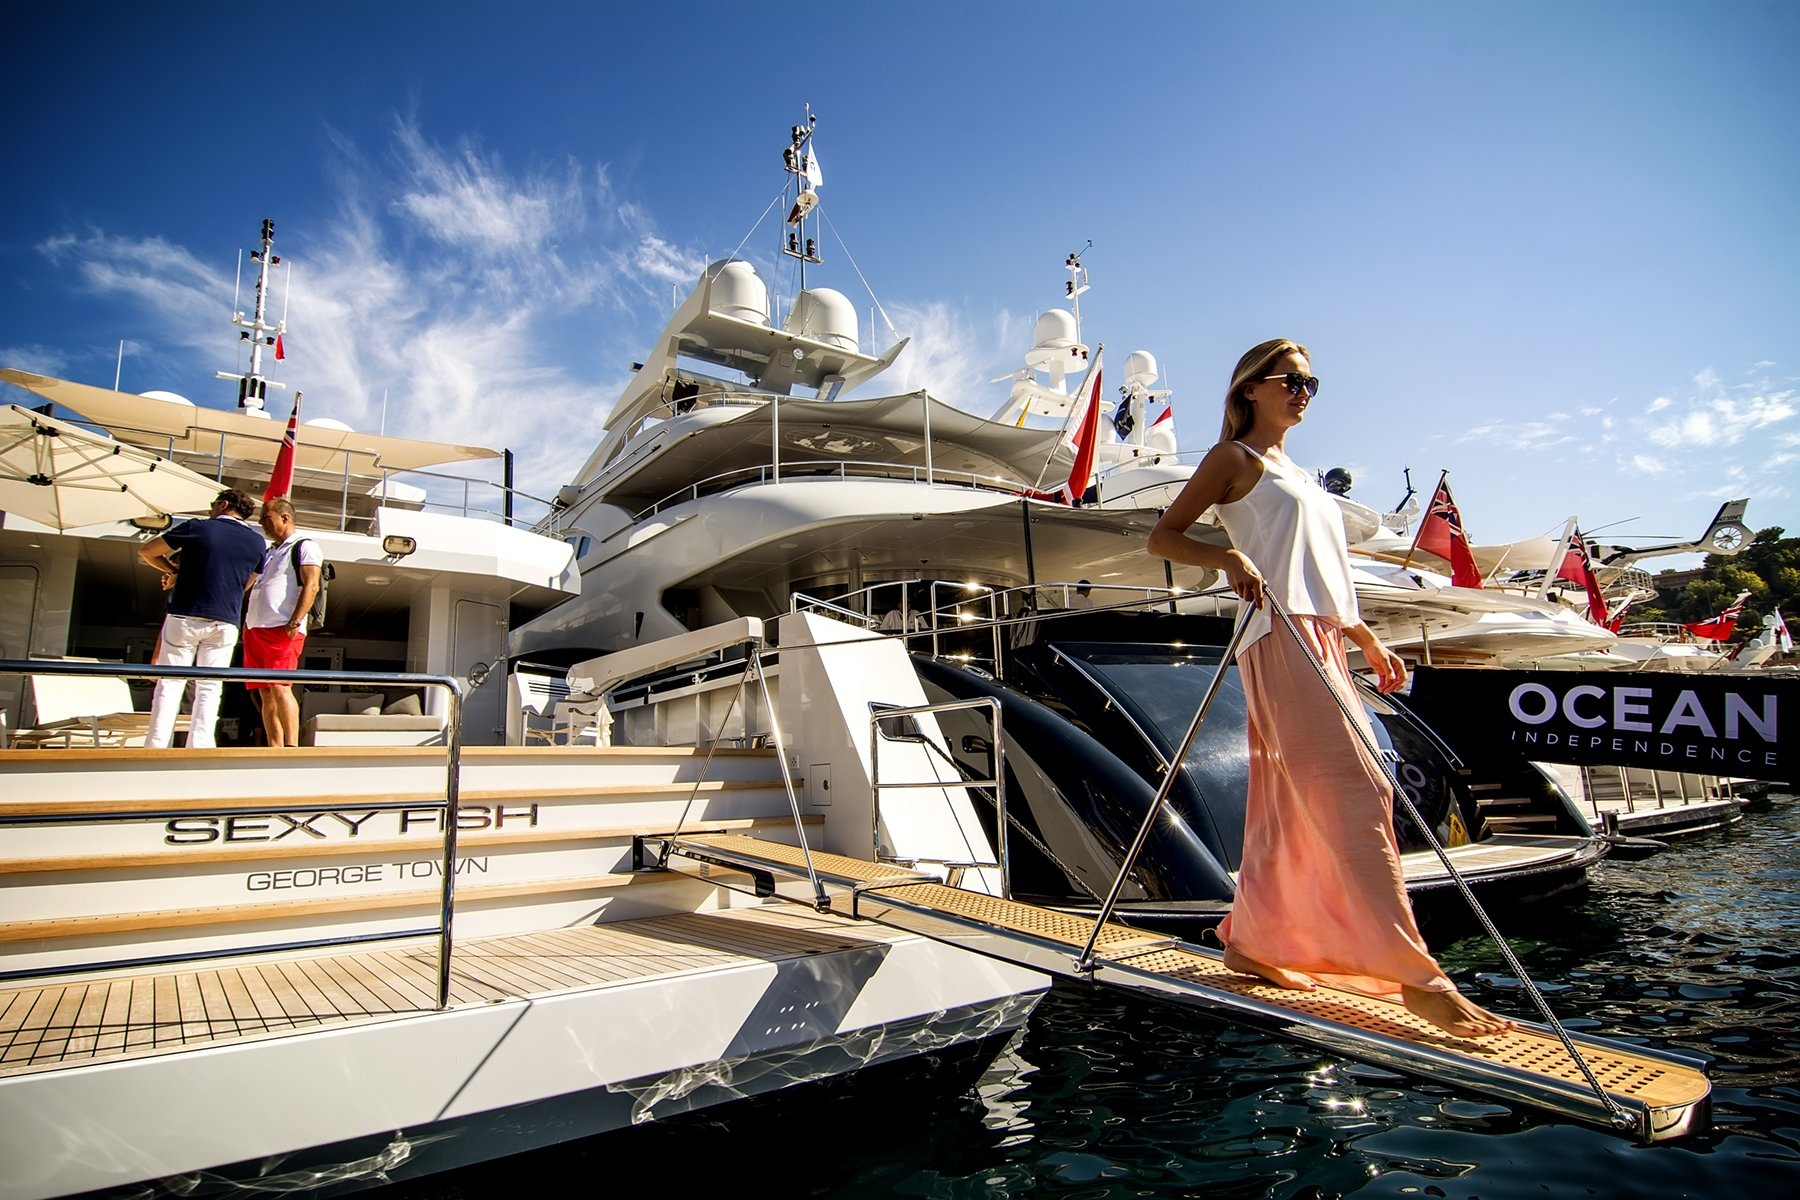 MONACO The Billionaire's Playground